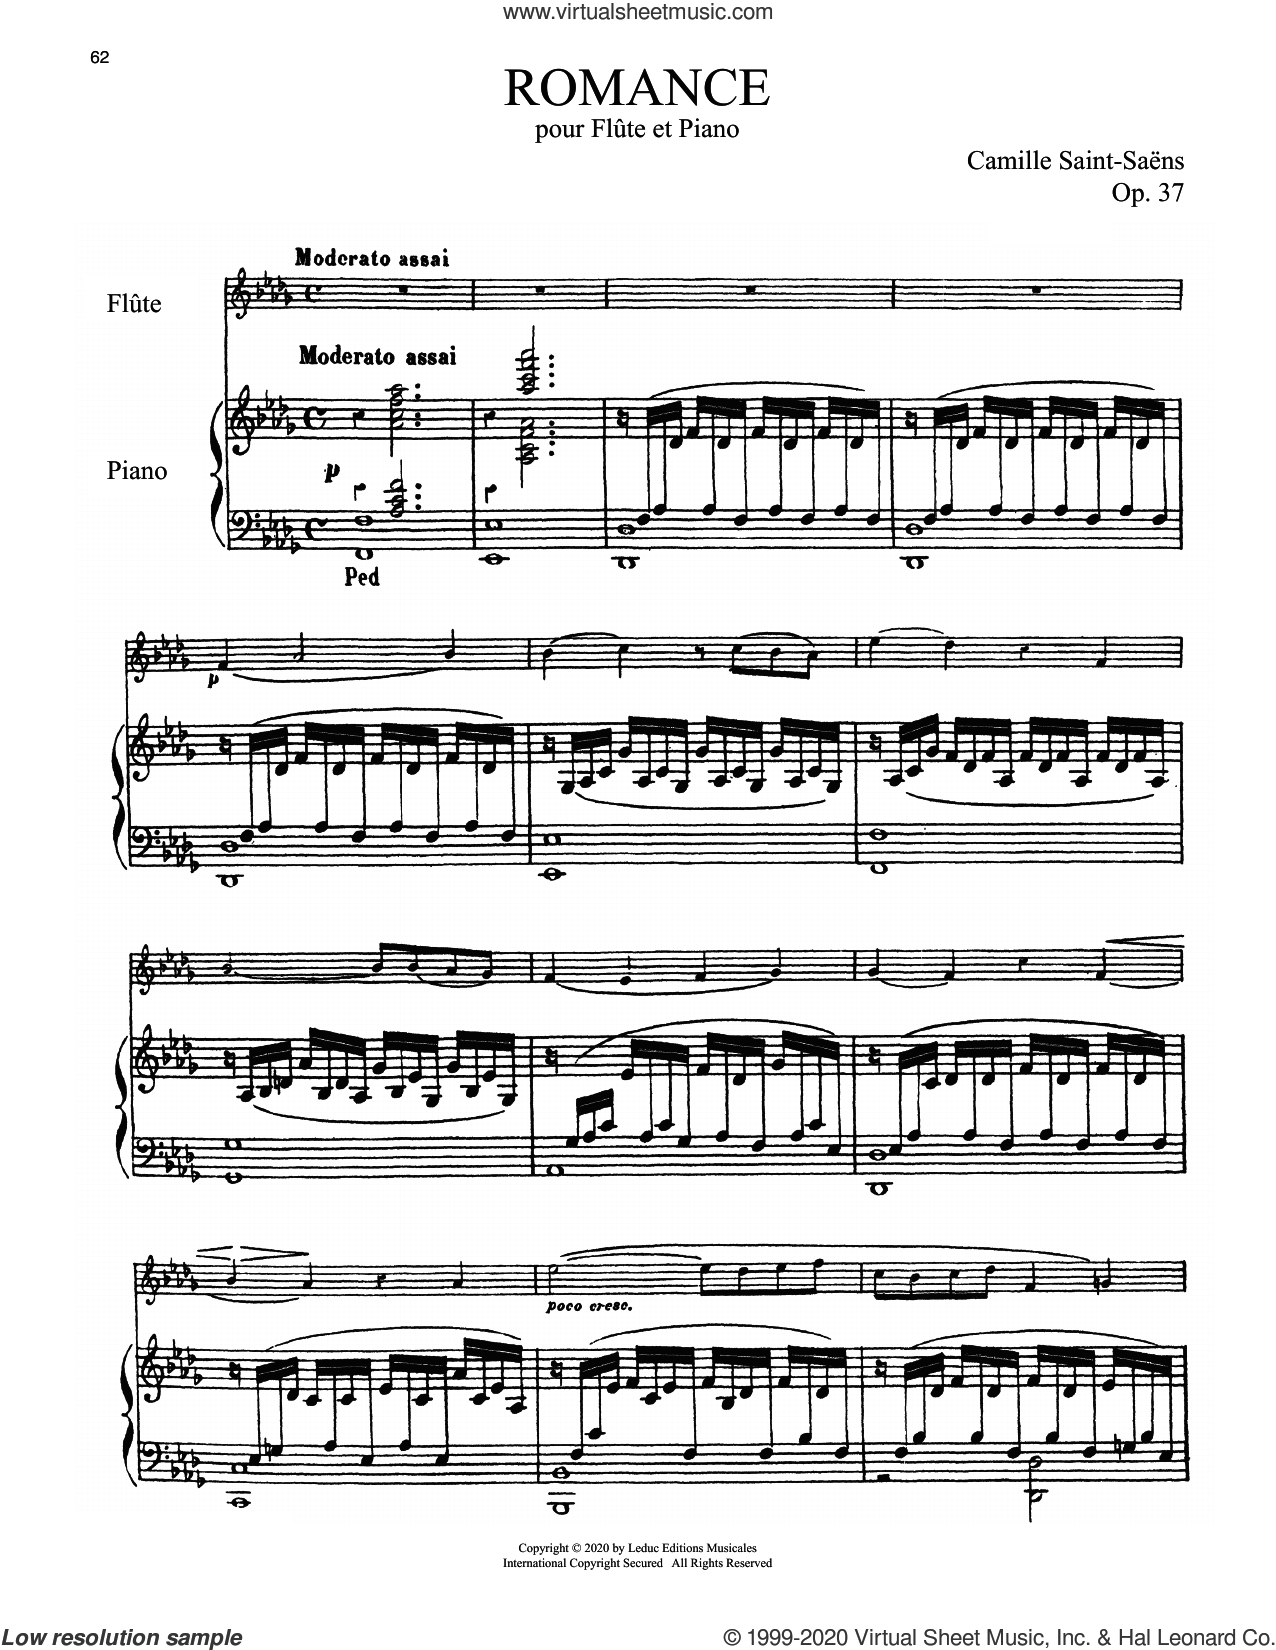 Romance, Op. 37 sheet music for flute and piano by Camille Saint-Saens, classical score, intermediate skill level